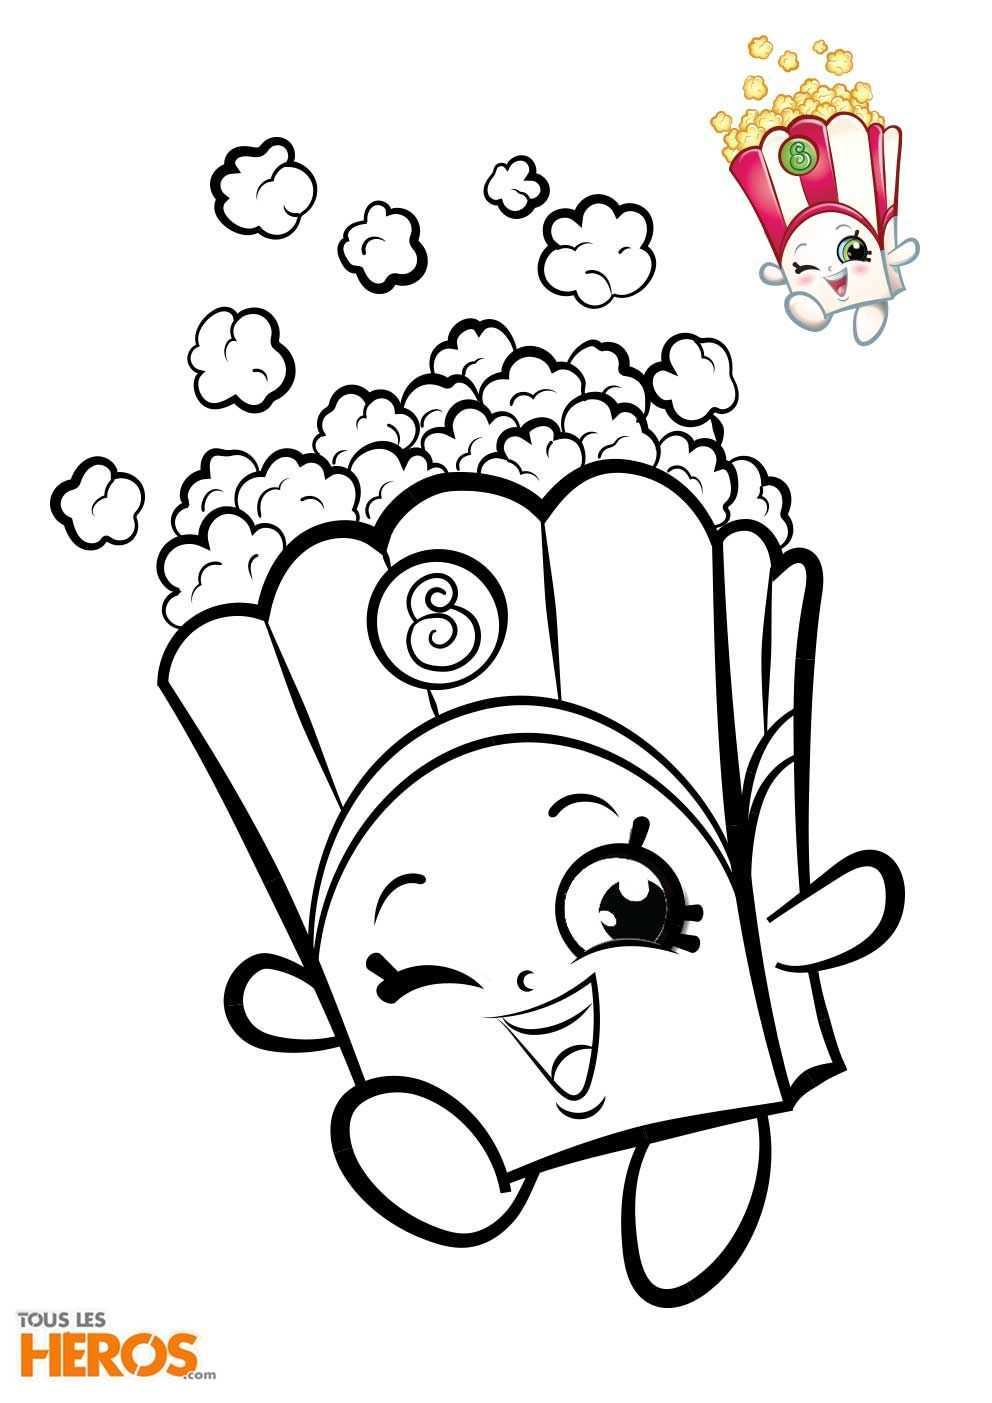 Coloriage Shopkins2 Jpg 992 1403 Mermaid Coloring Pages Shopkin Coloring Pages Coloring Pages